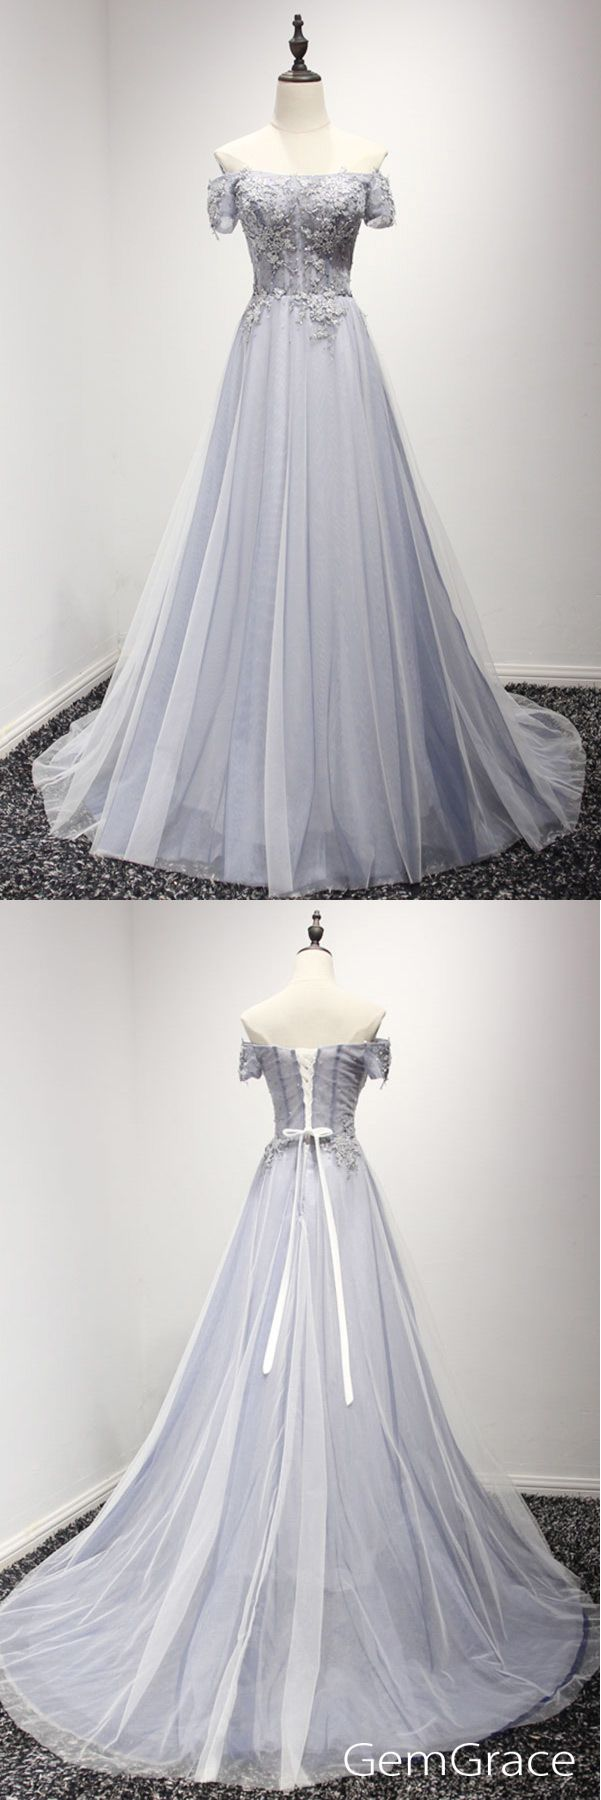 Dusty grey long tulle train length prom dress with off shoulder. Pro custom by